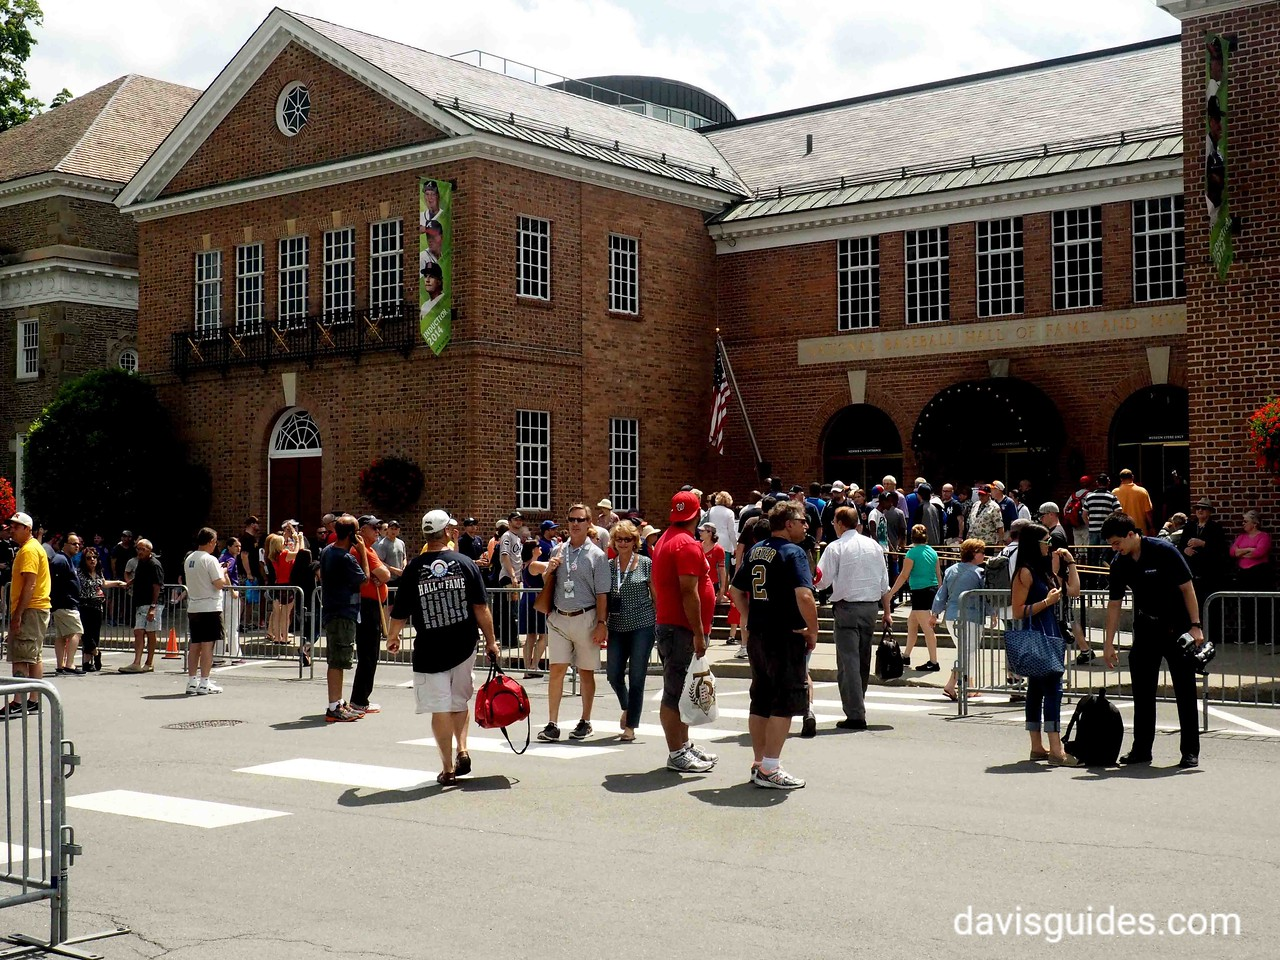 Baseball Hall of Fame Cooperstown NY